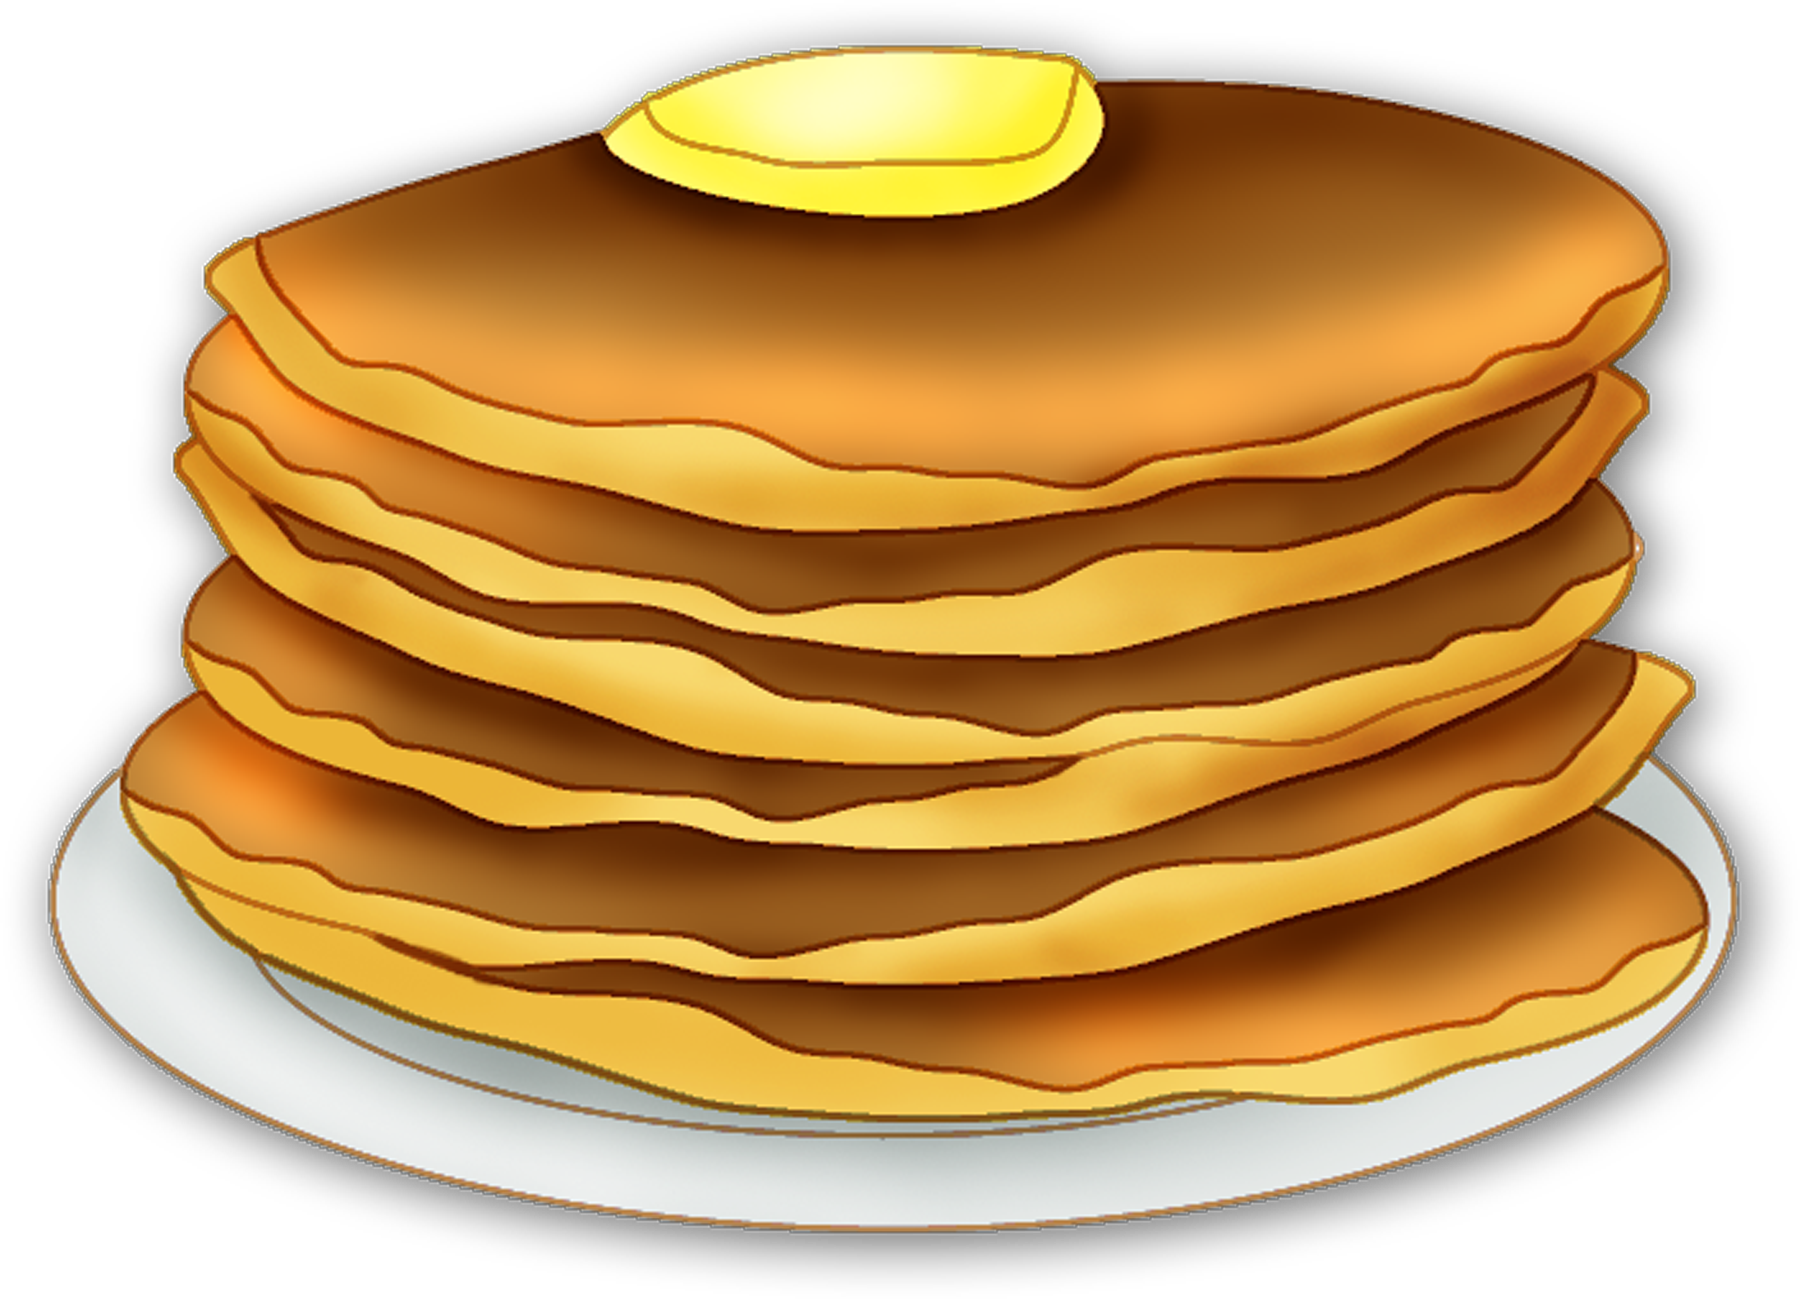 collection of pancake. Breakfast clipart transparent background